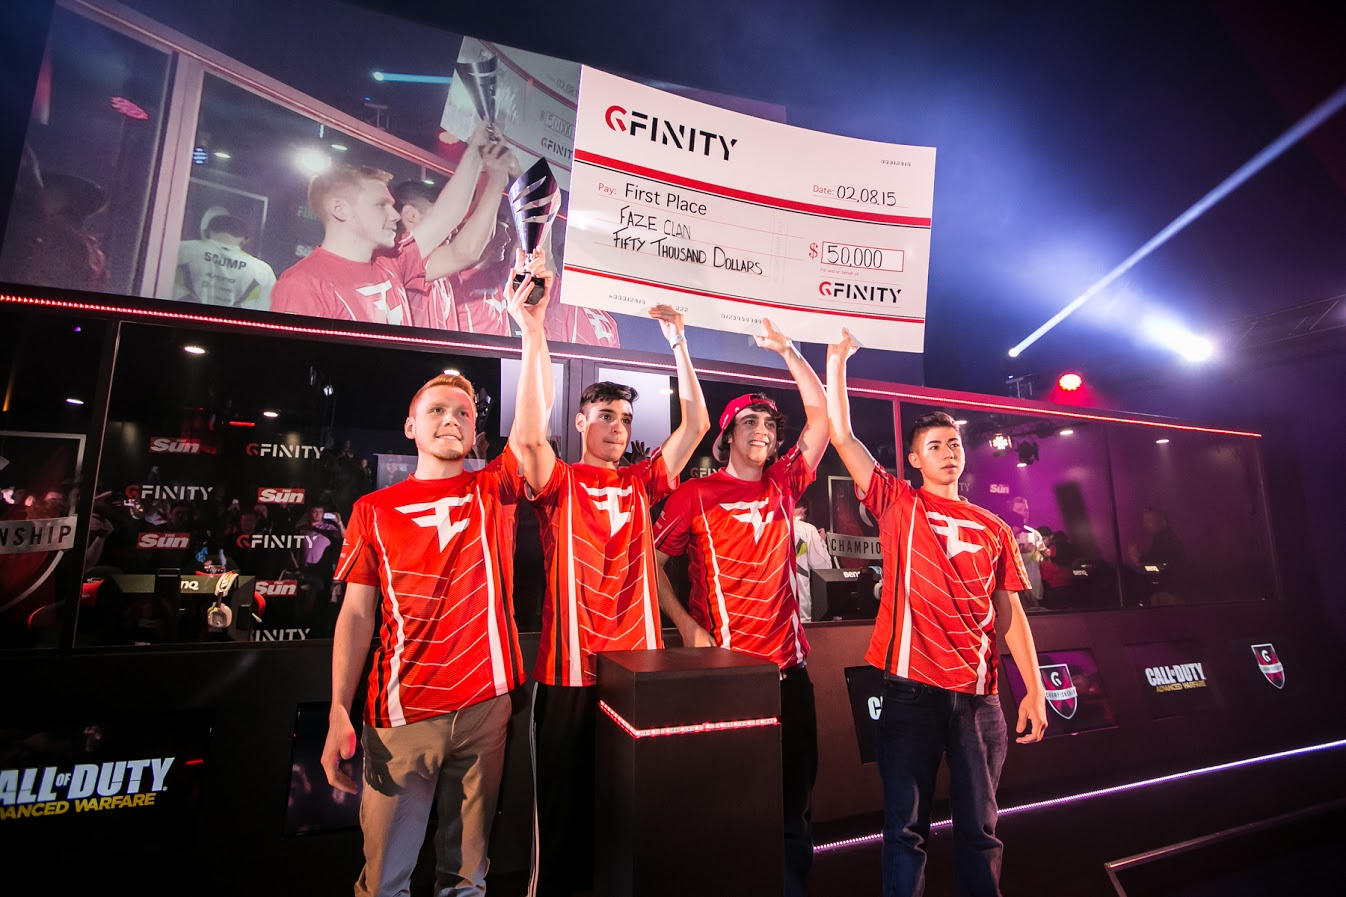 Your Call of Duty Summer Championship Victors - FaZe!